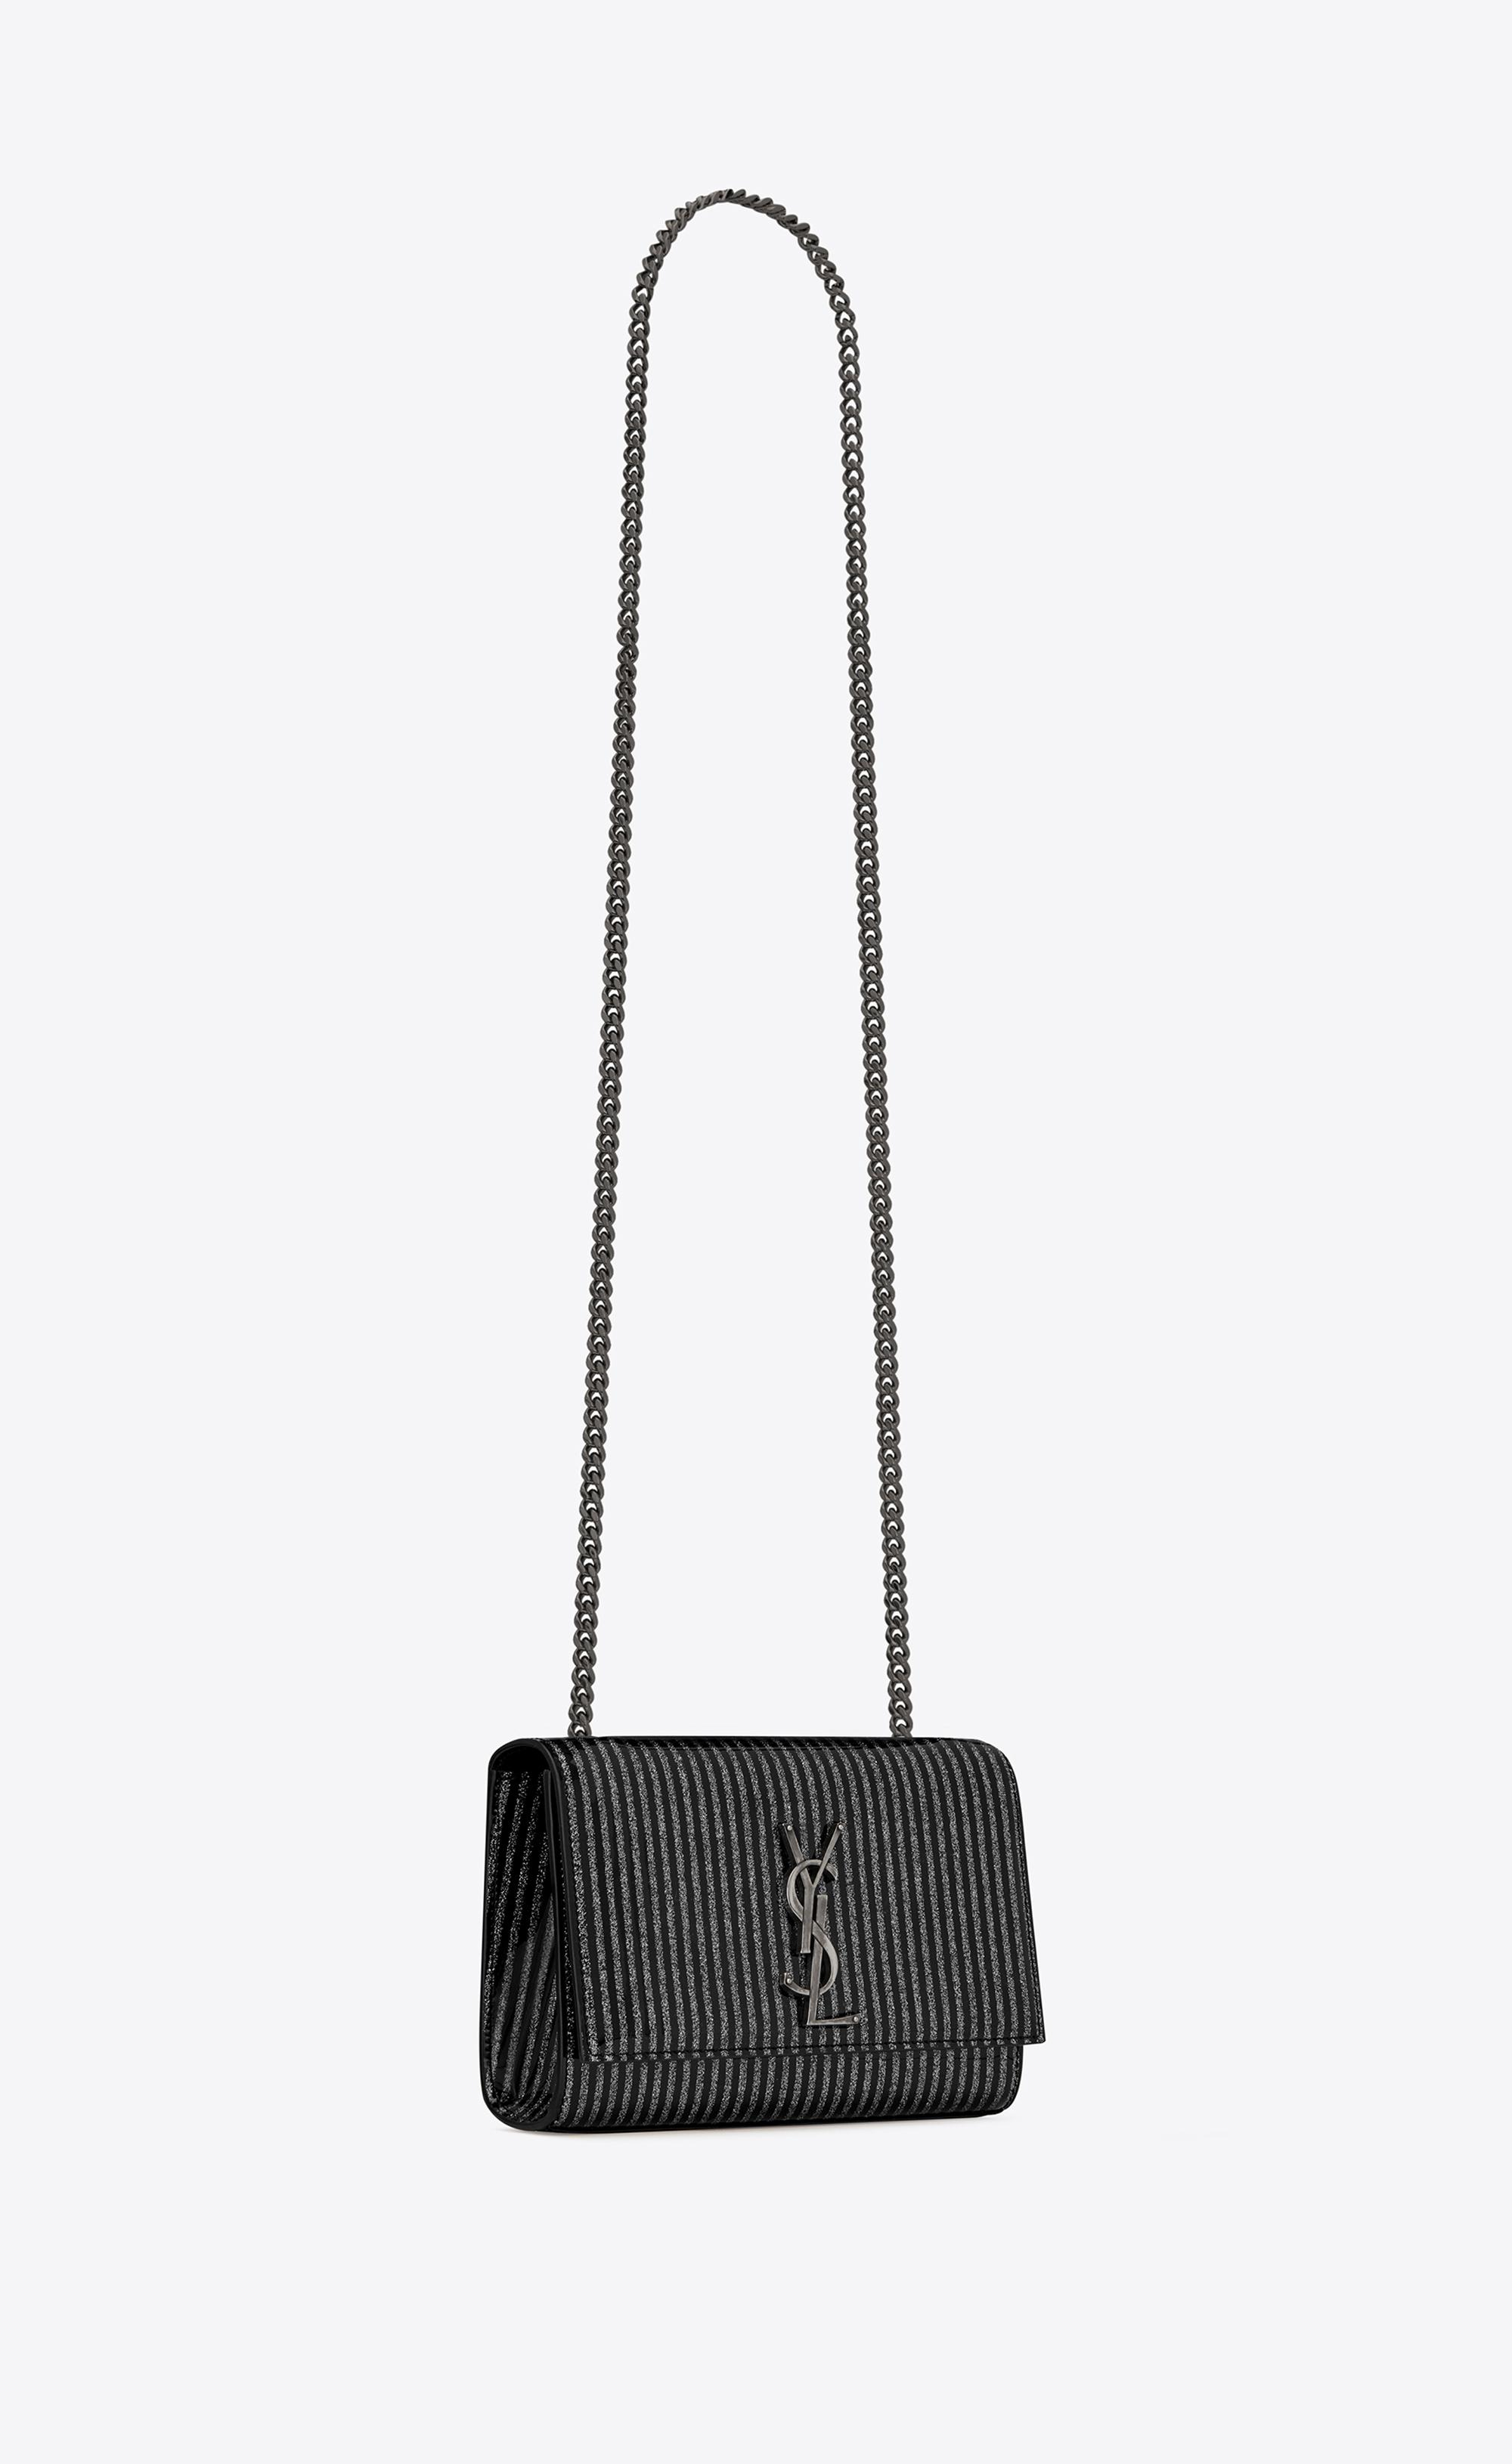 d10fb99c91a86 Saint Laurent Kate Small In Glitter Striped Patent Leather - Lyst